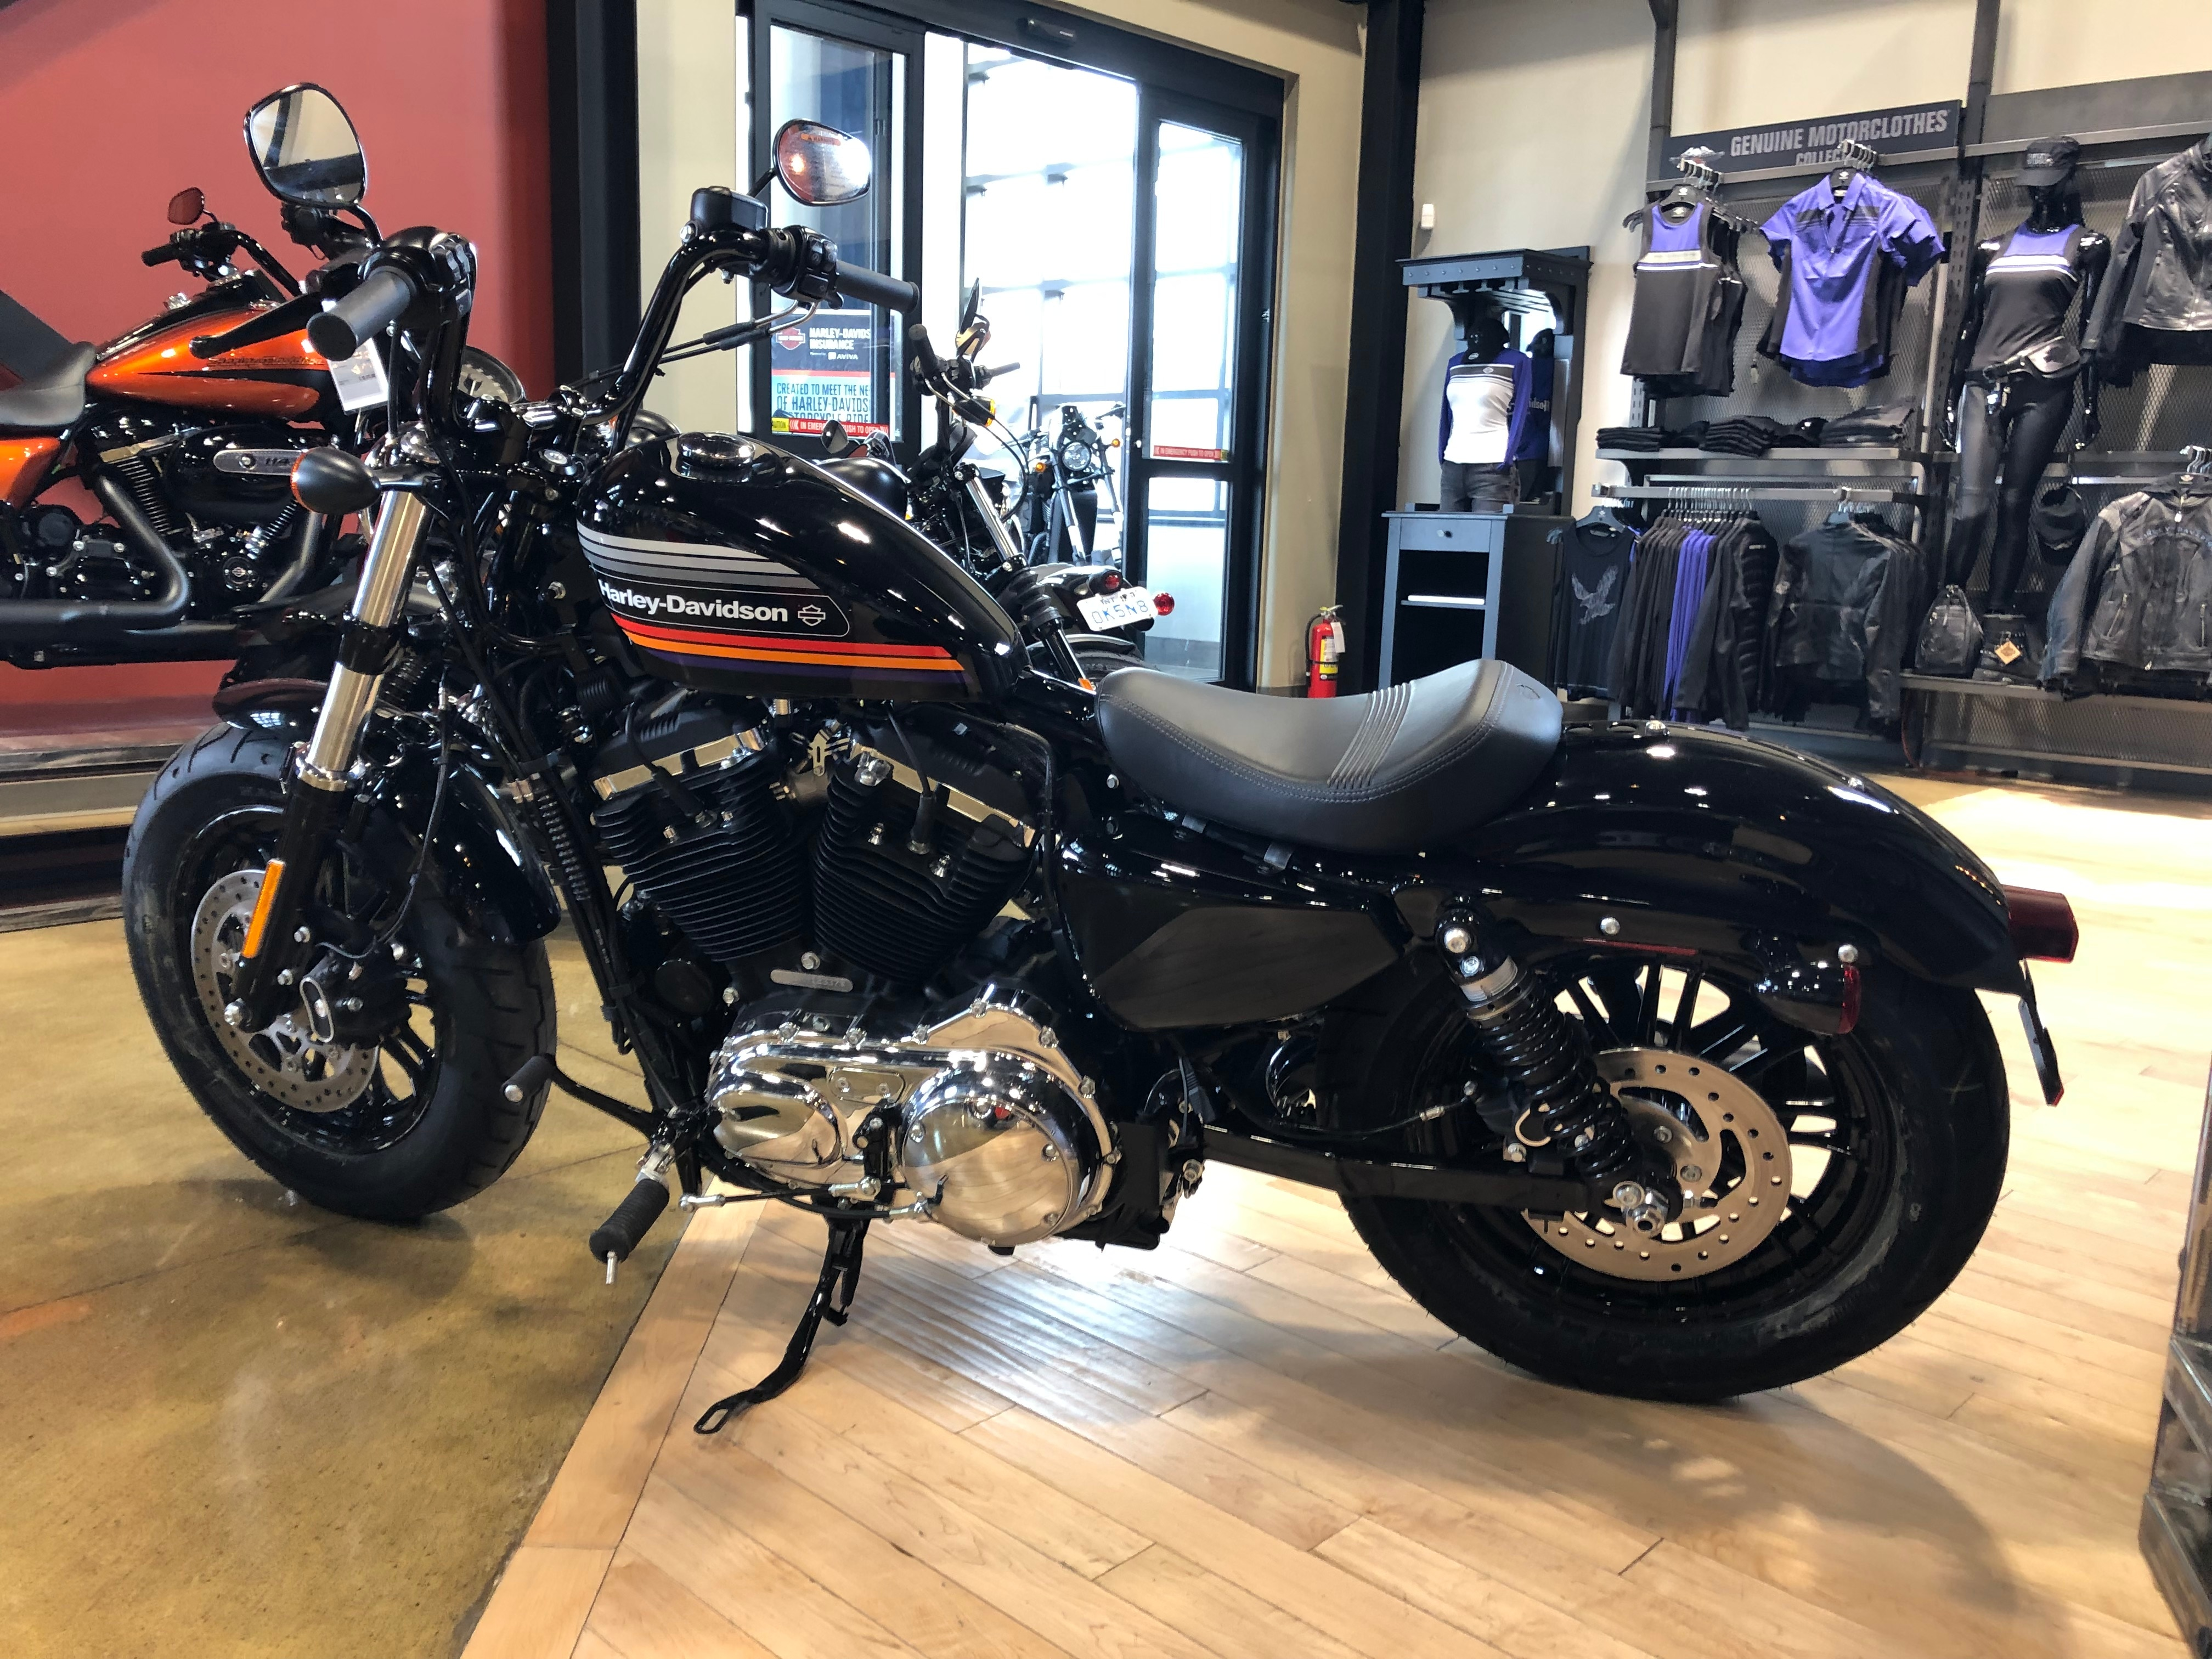 2019 HARLEY-DAVIDSON XL1200X Sportster Forty-Eight